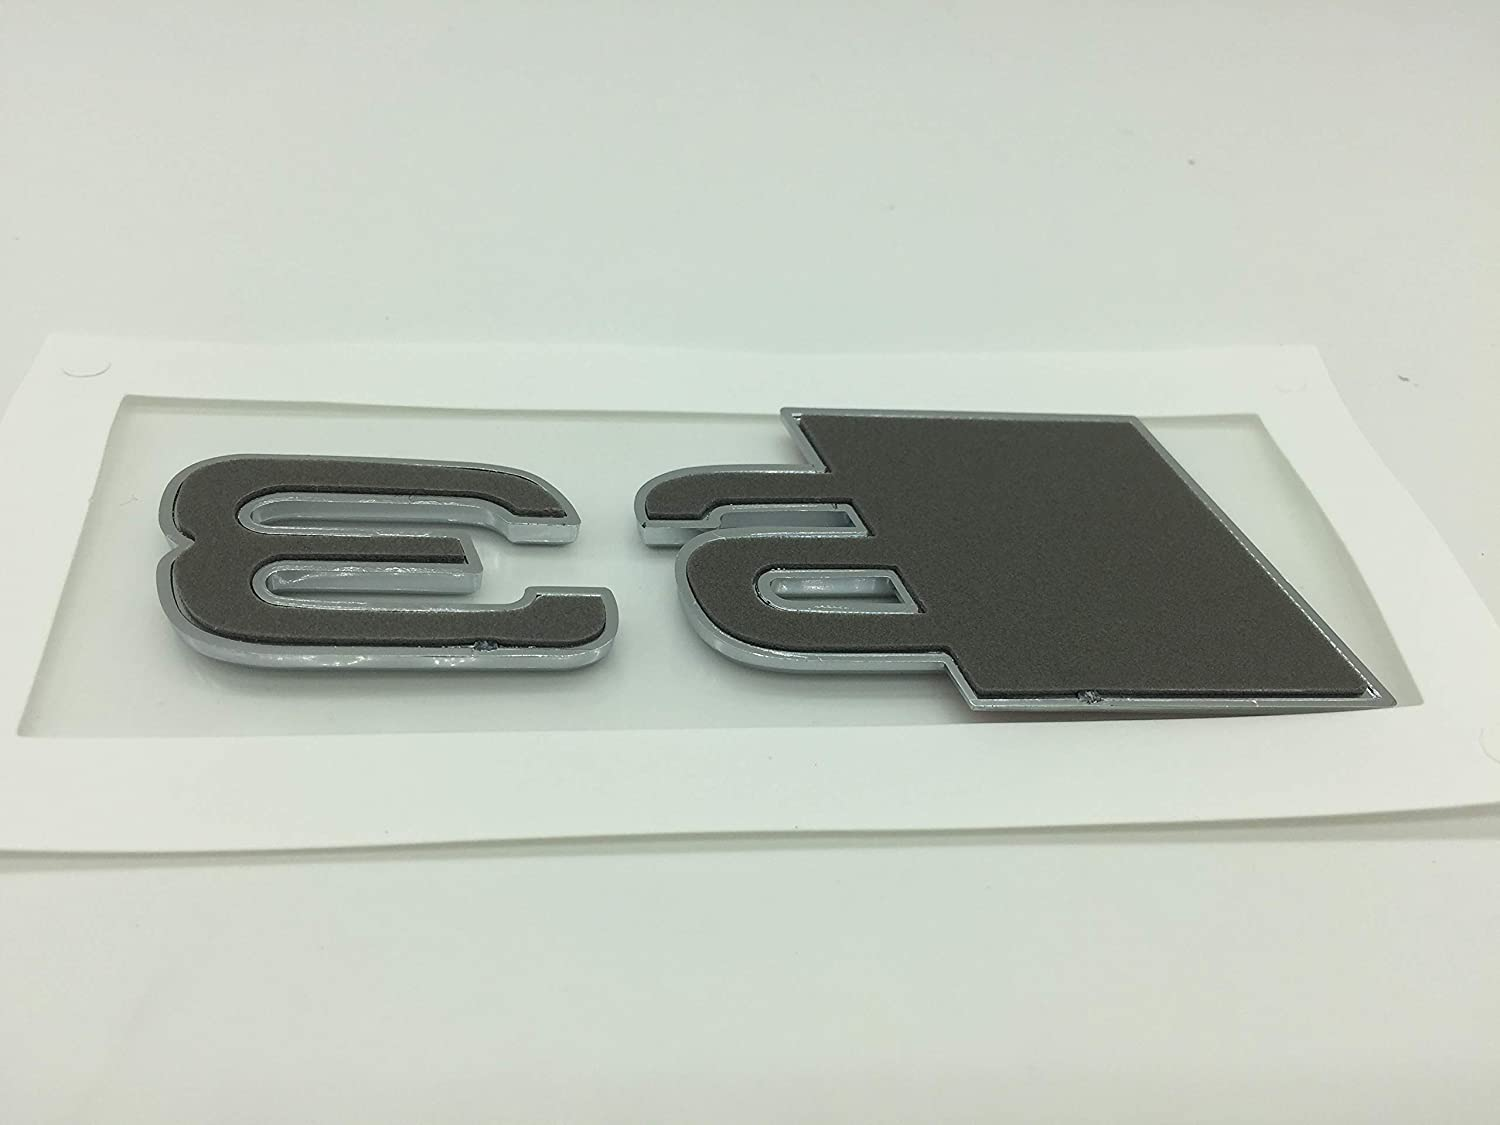 S6 OEM ABS Nameplate compatible for Audi S 3 4 5 6 7 8 s3 S4 s5 s6 s7 s8 Chrome Silver Emblem 3D Trunk Logo Badge Compact